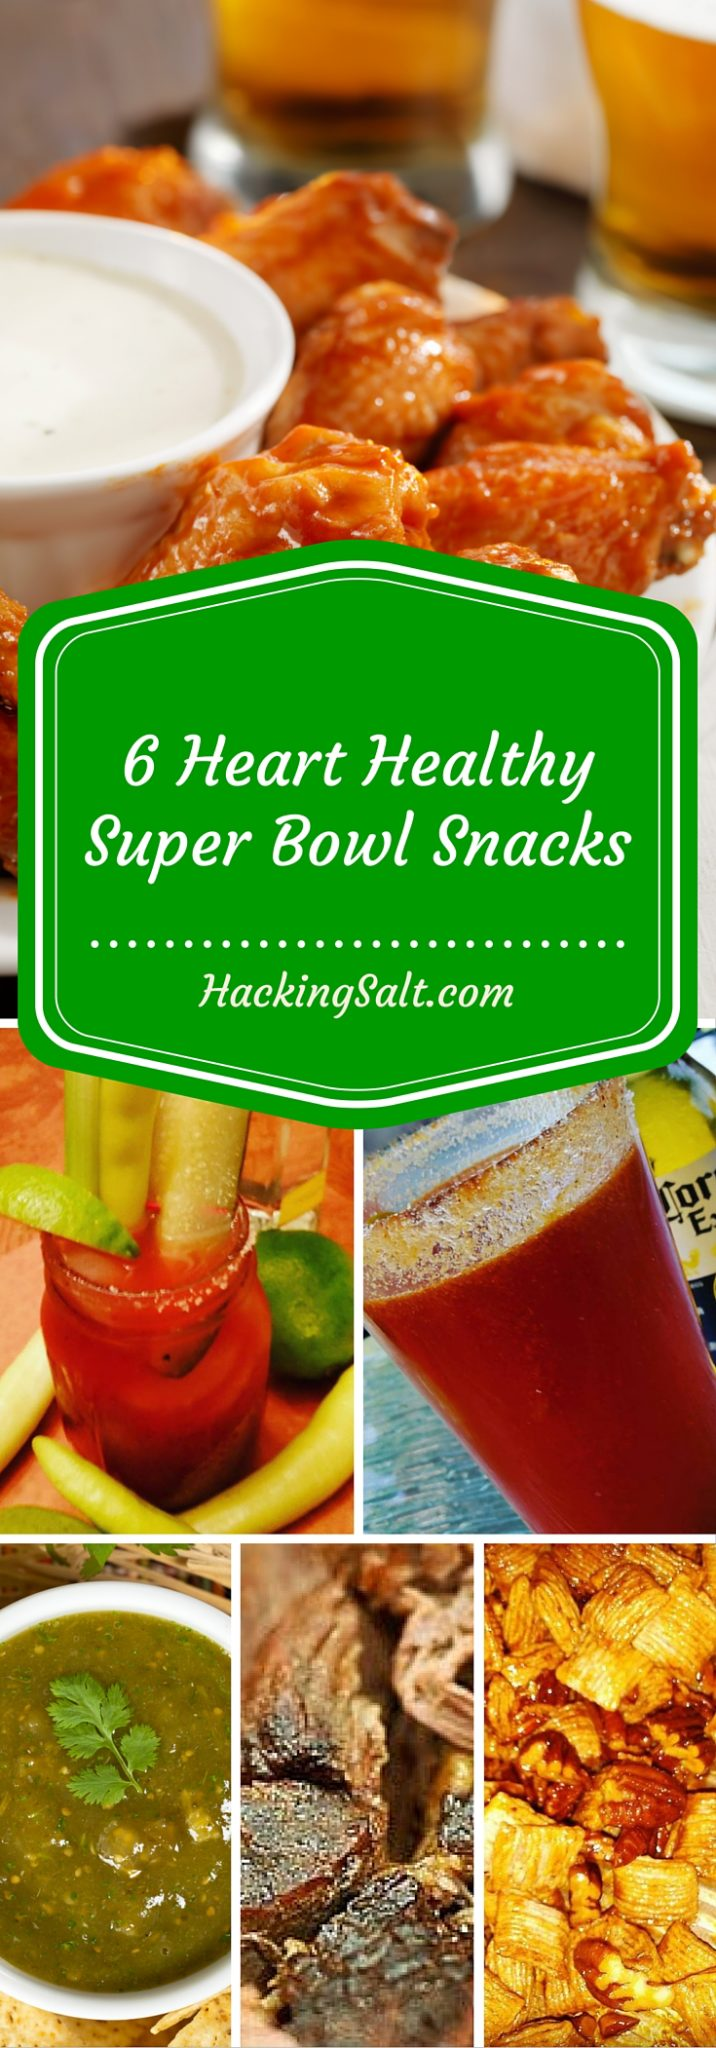 As Featured on Buzzfeed - 6 Heart Healthy Super Bowl Snacks